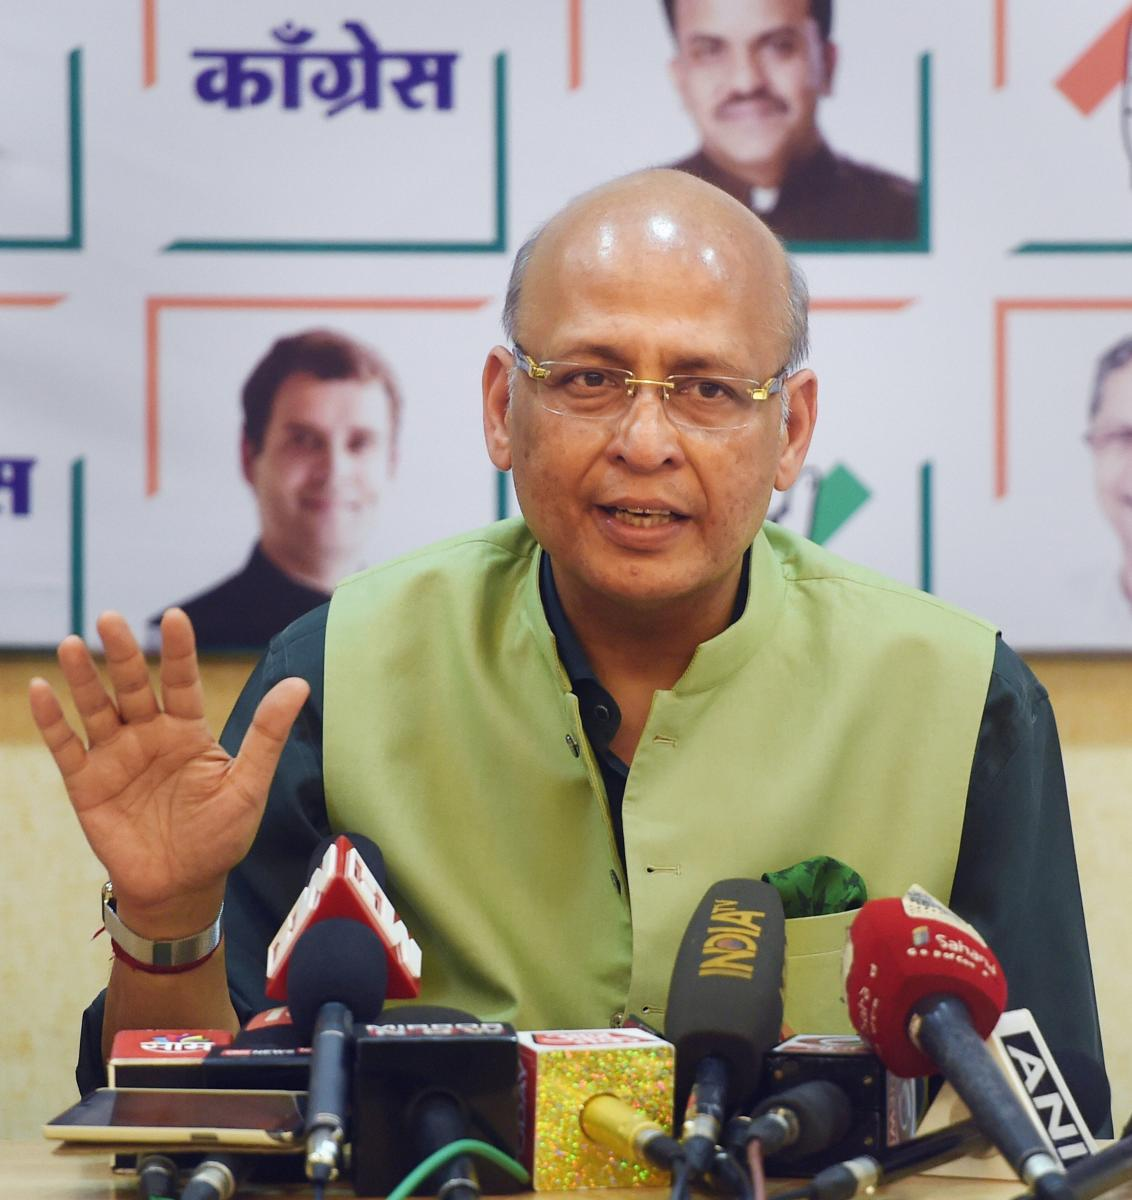 Senior congress leader Abhishek Manu Singhvi. PTI file photo.